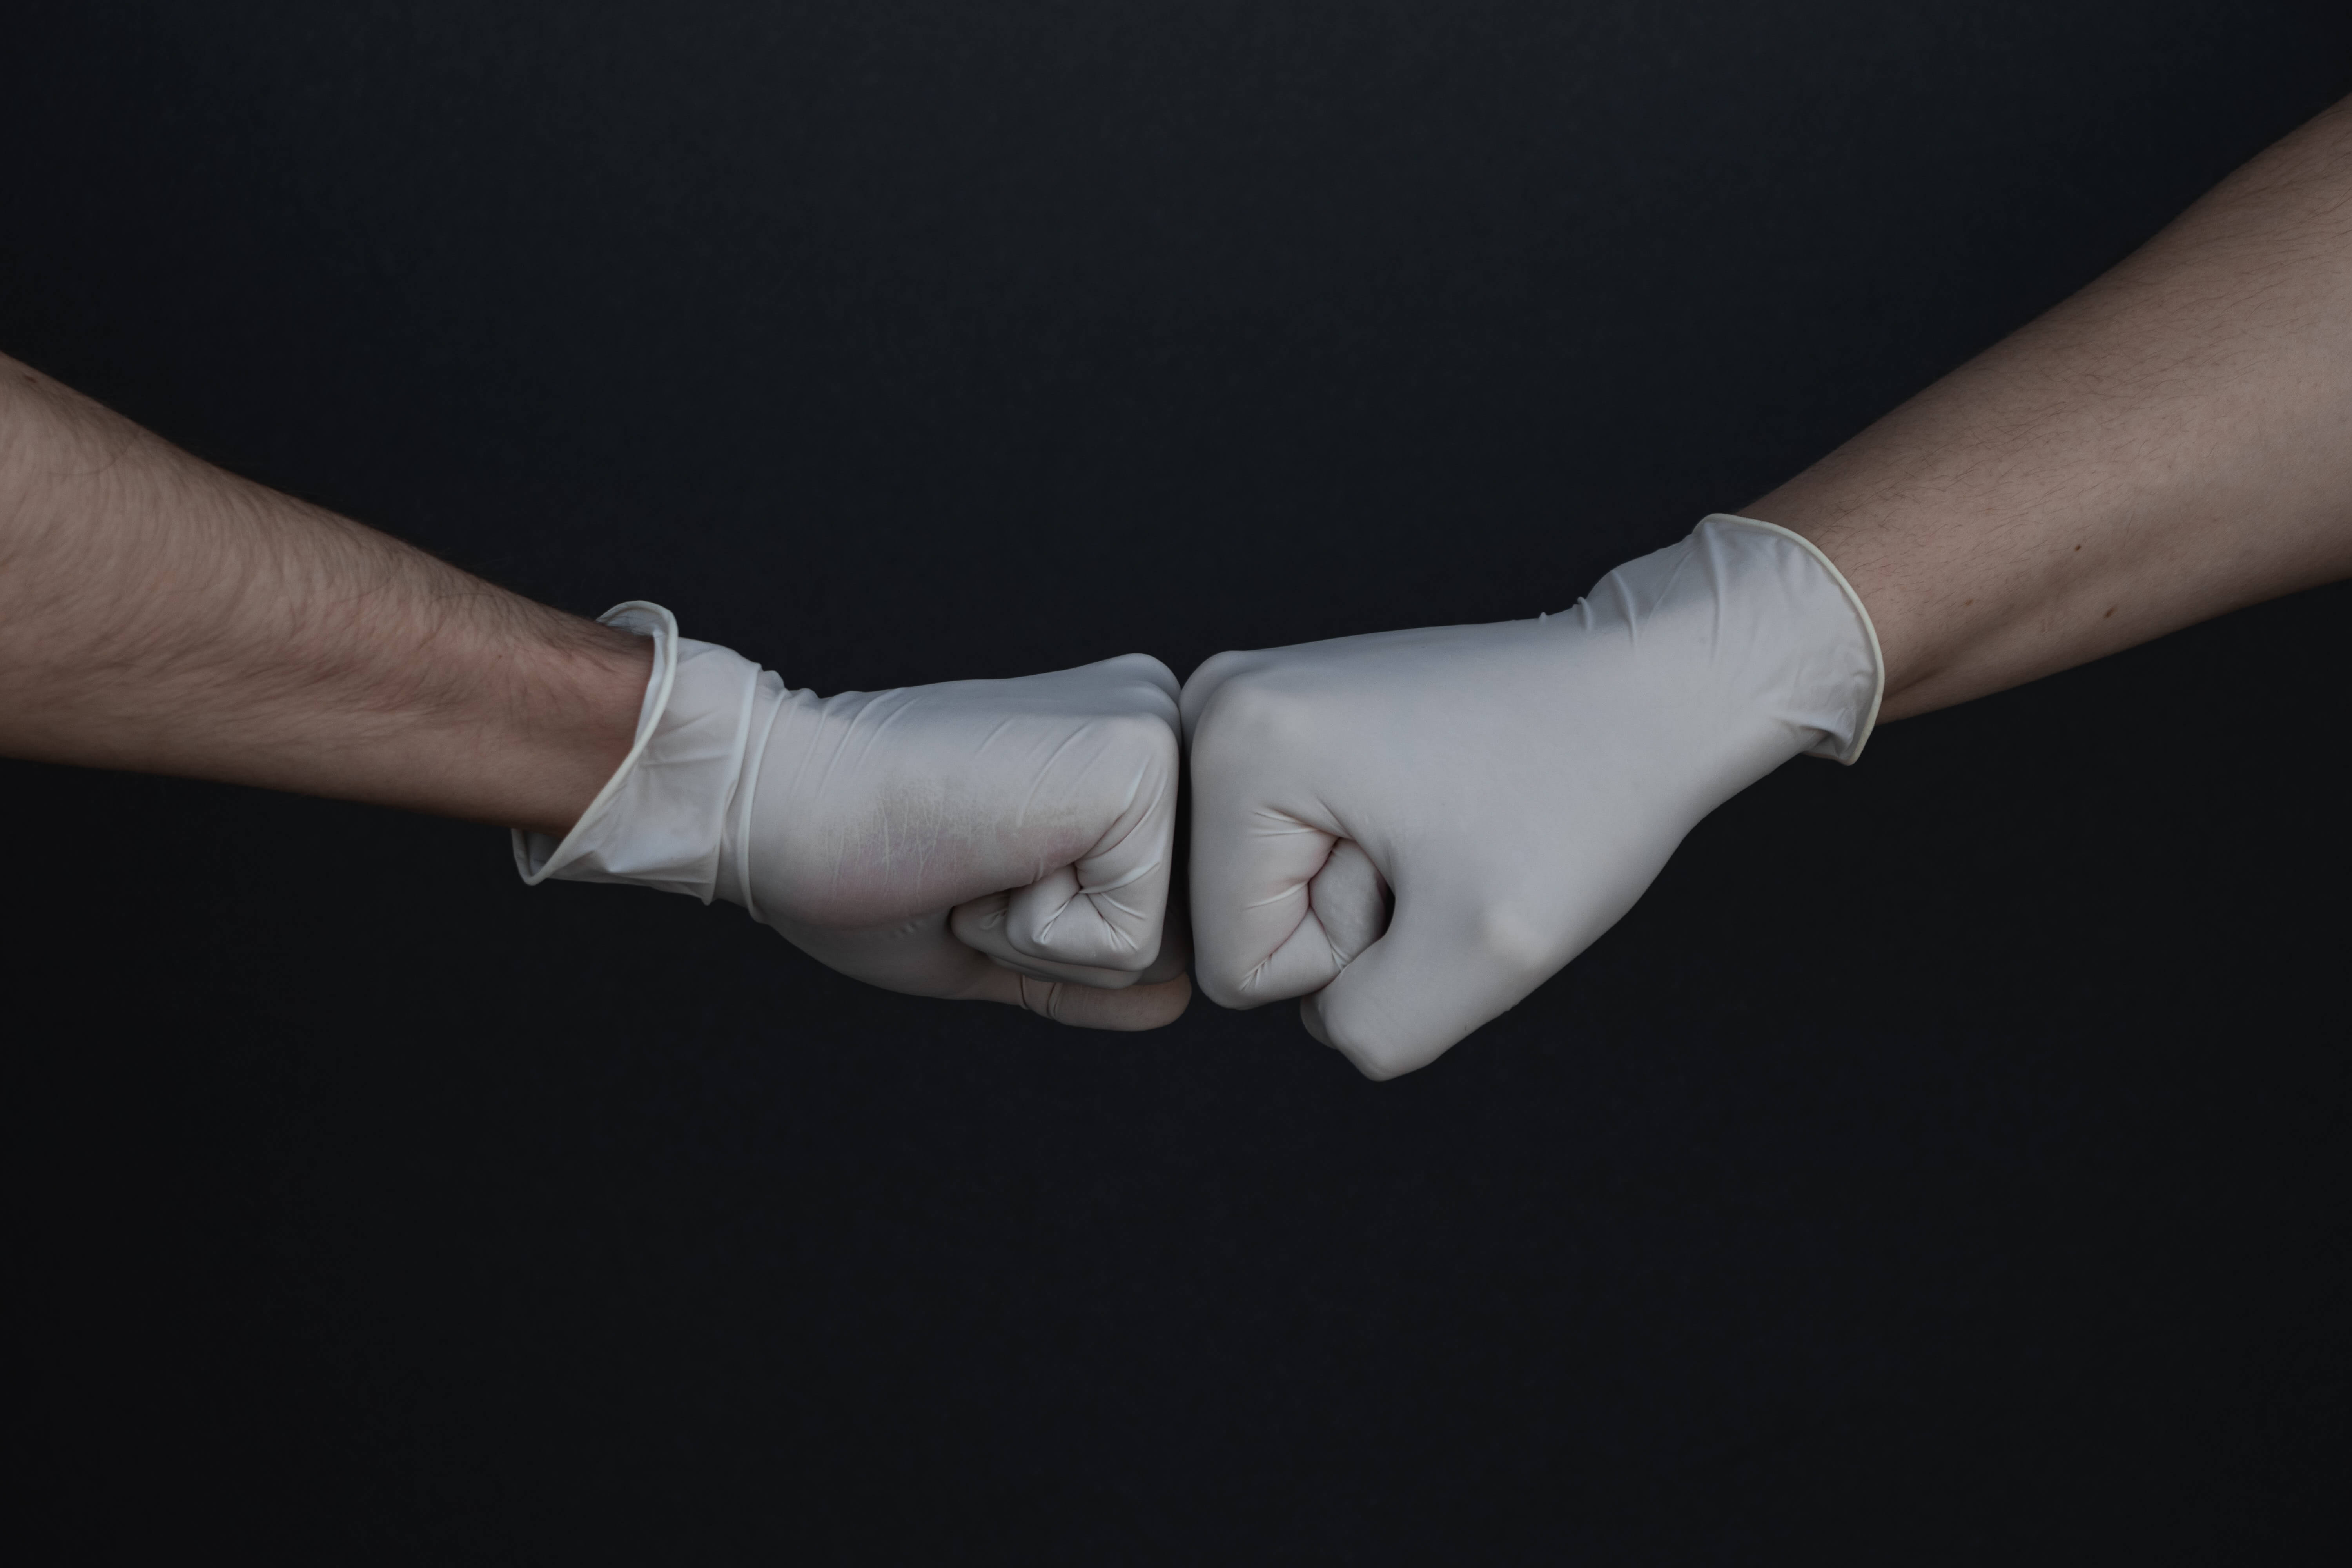 two people fist pumping wearing rubber gloves